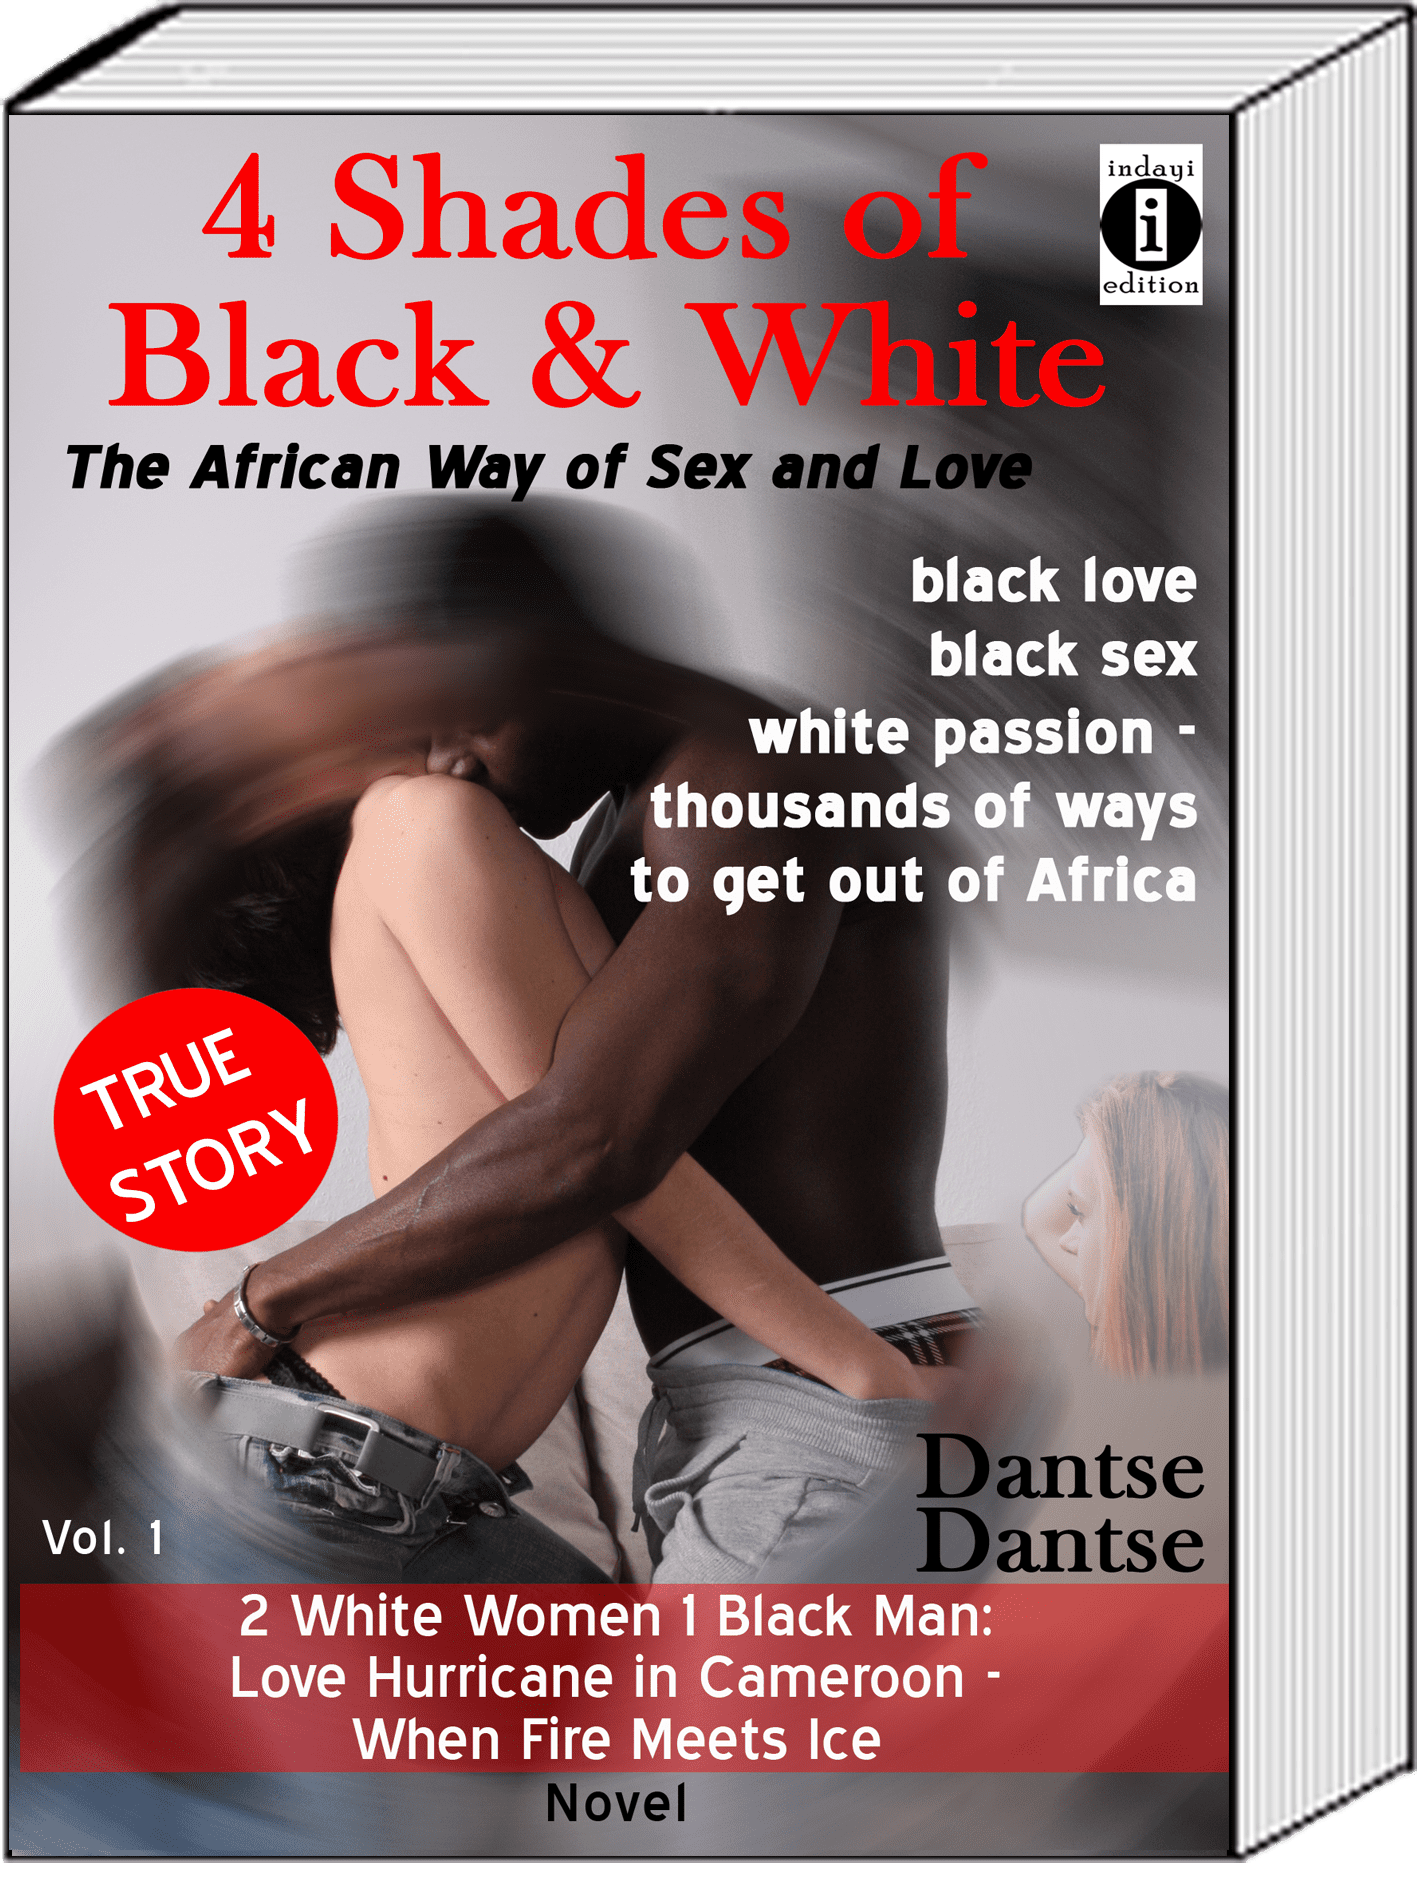 4 Shades of Black & White The African Way of Sex and Love: black love, black sex, white passion – thousands of ways to get out of Africa